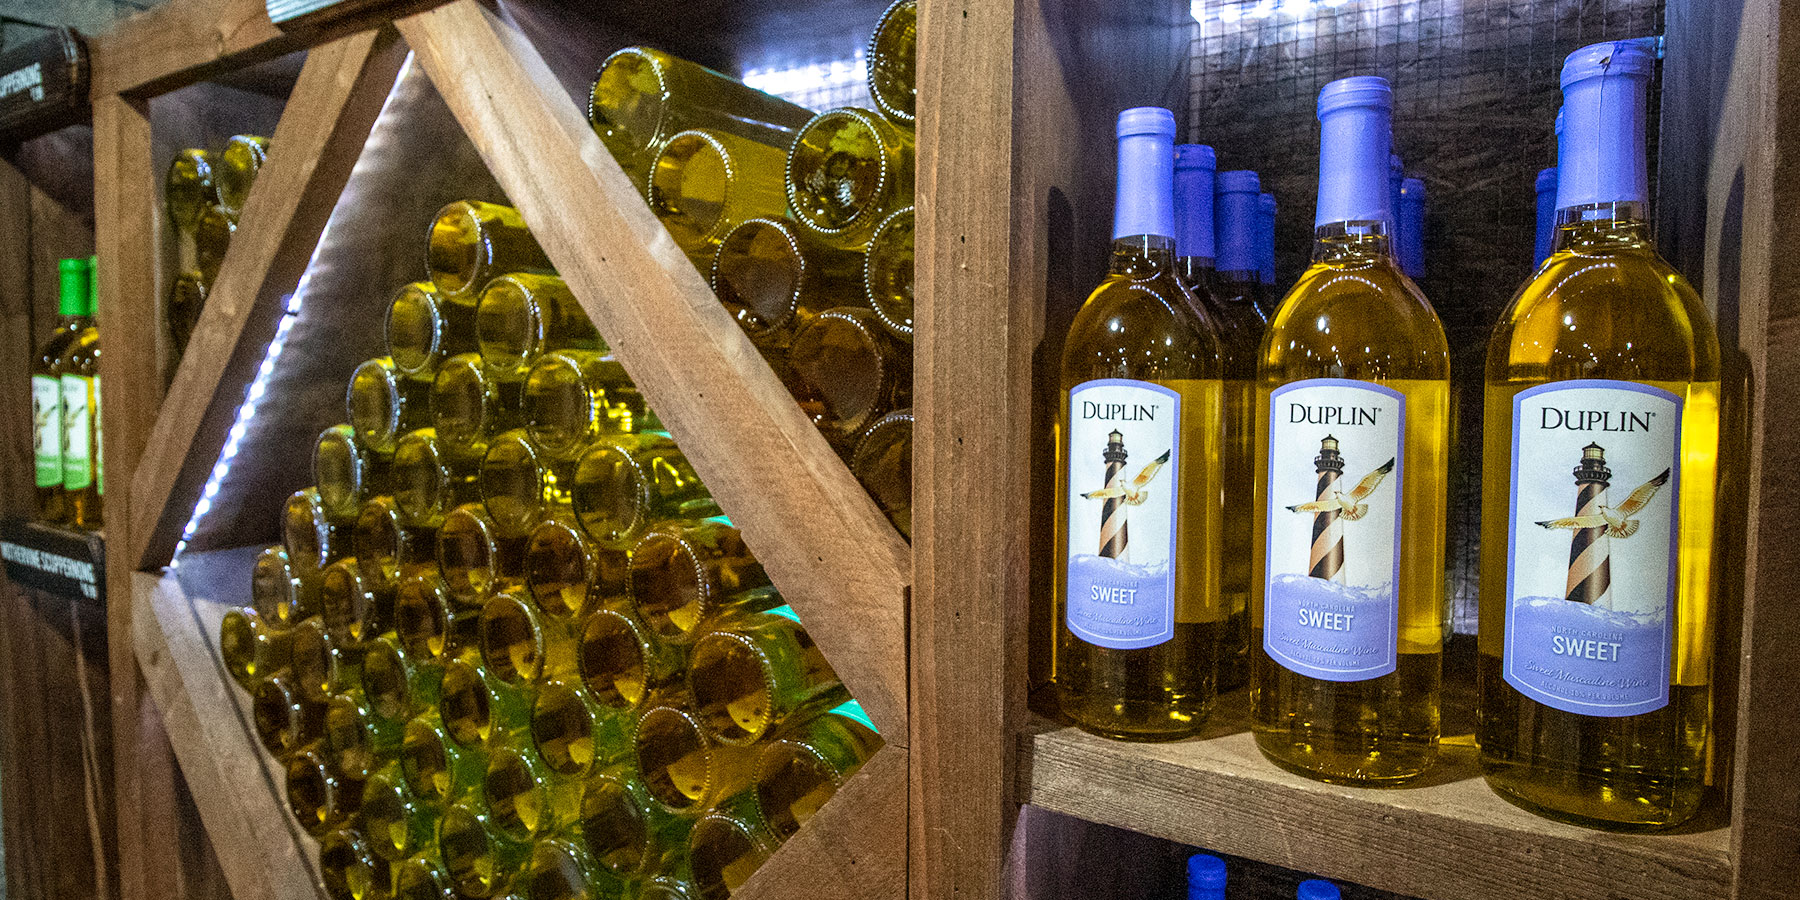 Duplin Winery donates 15,000 gallons of wine to help make hand sanitizer